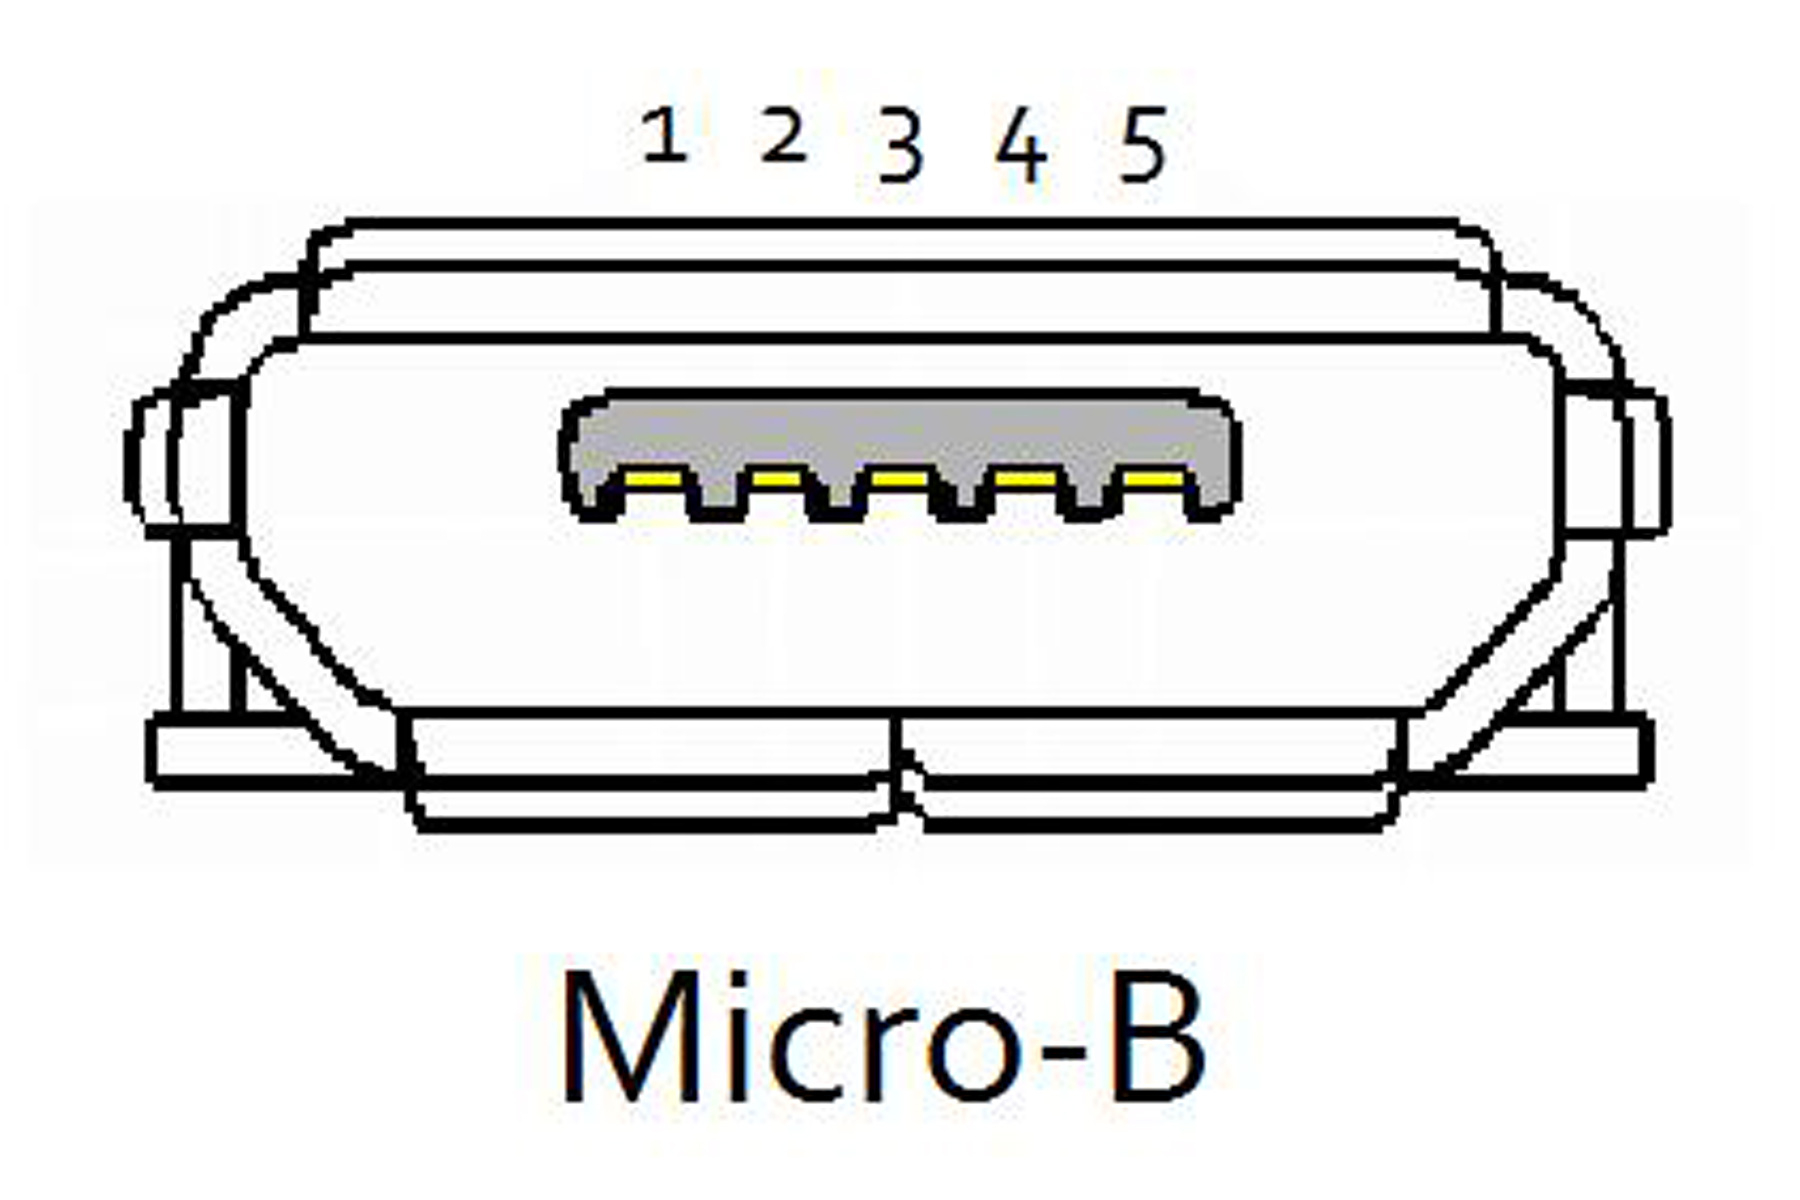 File:usb Micro-B Receptacle - Wikimedia Commons - 2 Wiring Micro Usb B To Usb A Diagram